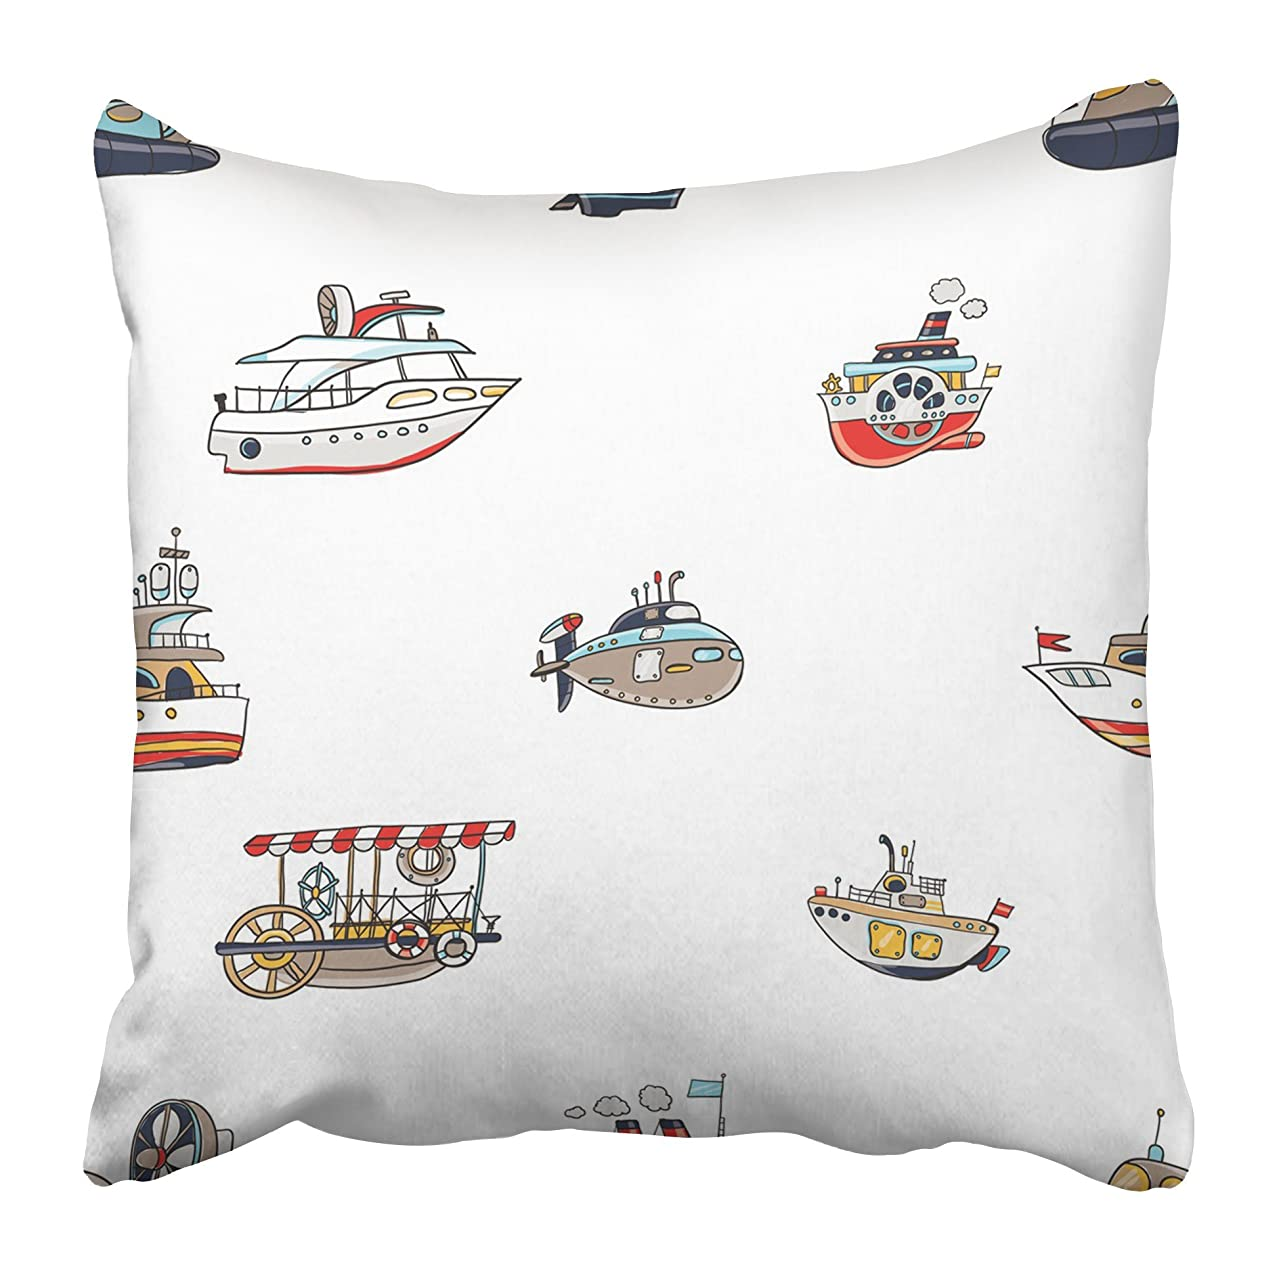 Emvency Decorative Throw Pillow Covers Cases Funny Cute Kids Toy Water Transport for Nursery Baby Bright Cartoon Boat Yacht Hovercraft Bus 18x18 Inches Pillowcases Case Cover Cushion Two Sided